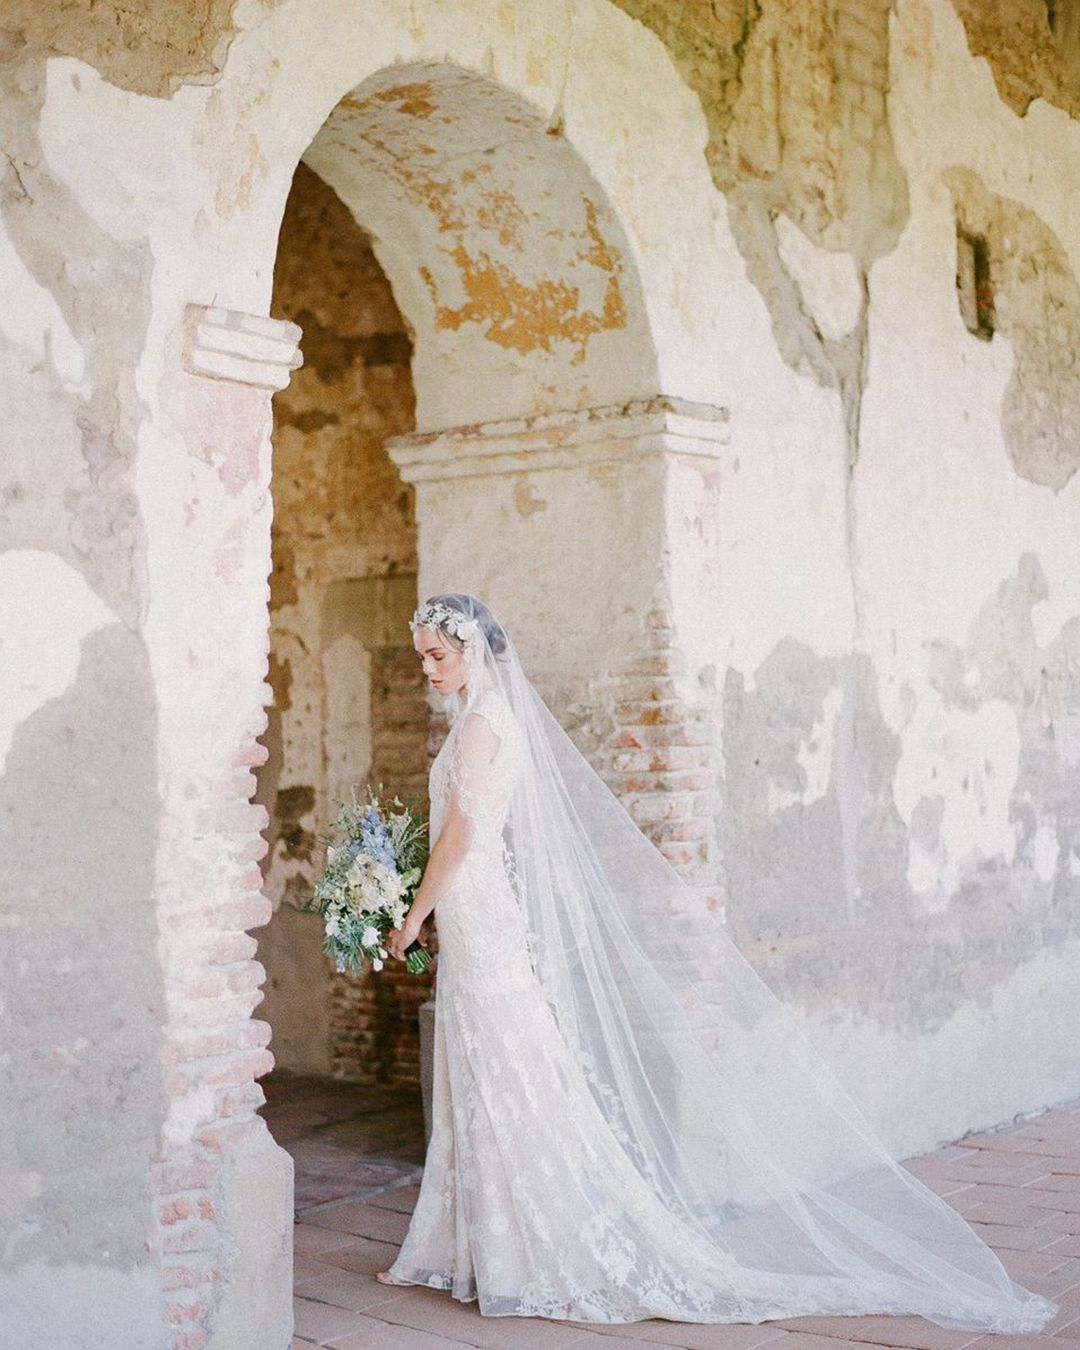 Vintage Wedding Dresses Miami: Love The Contrast Of Lace And Romantic Tulle Set Amidst